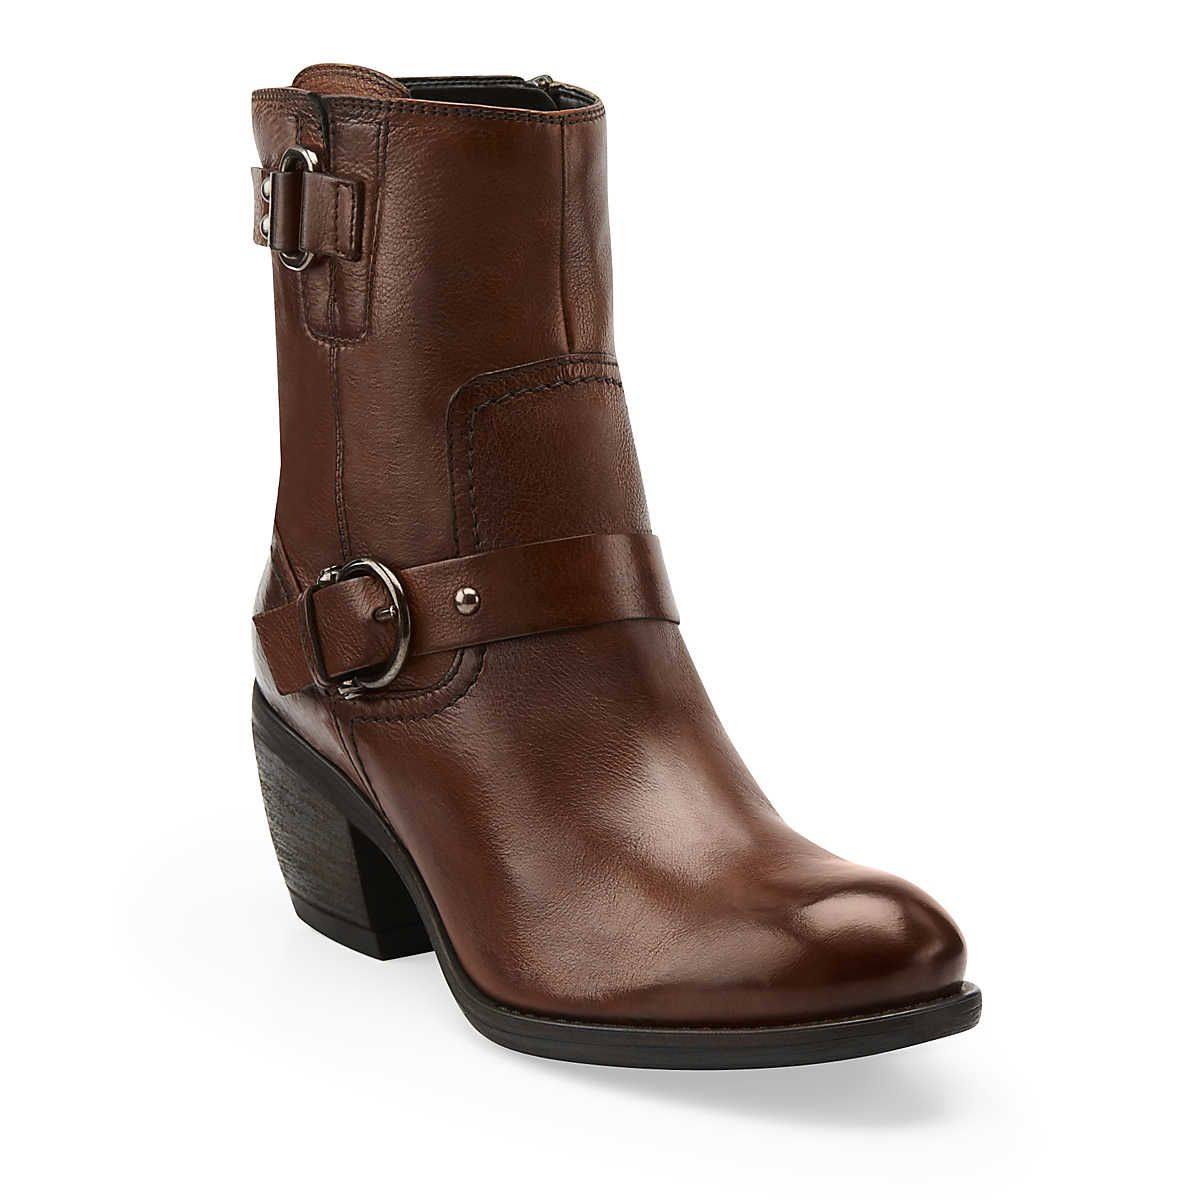 Mascarpone Cafe - I just bought these in black, and I can't wait for them  to arrive! the perfect NYC boot!